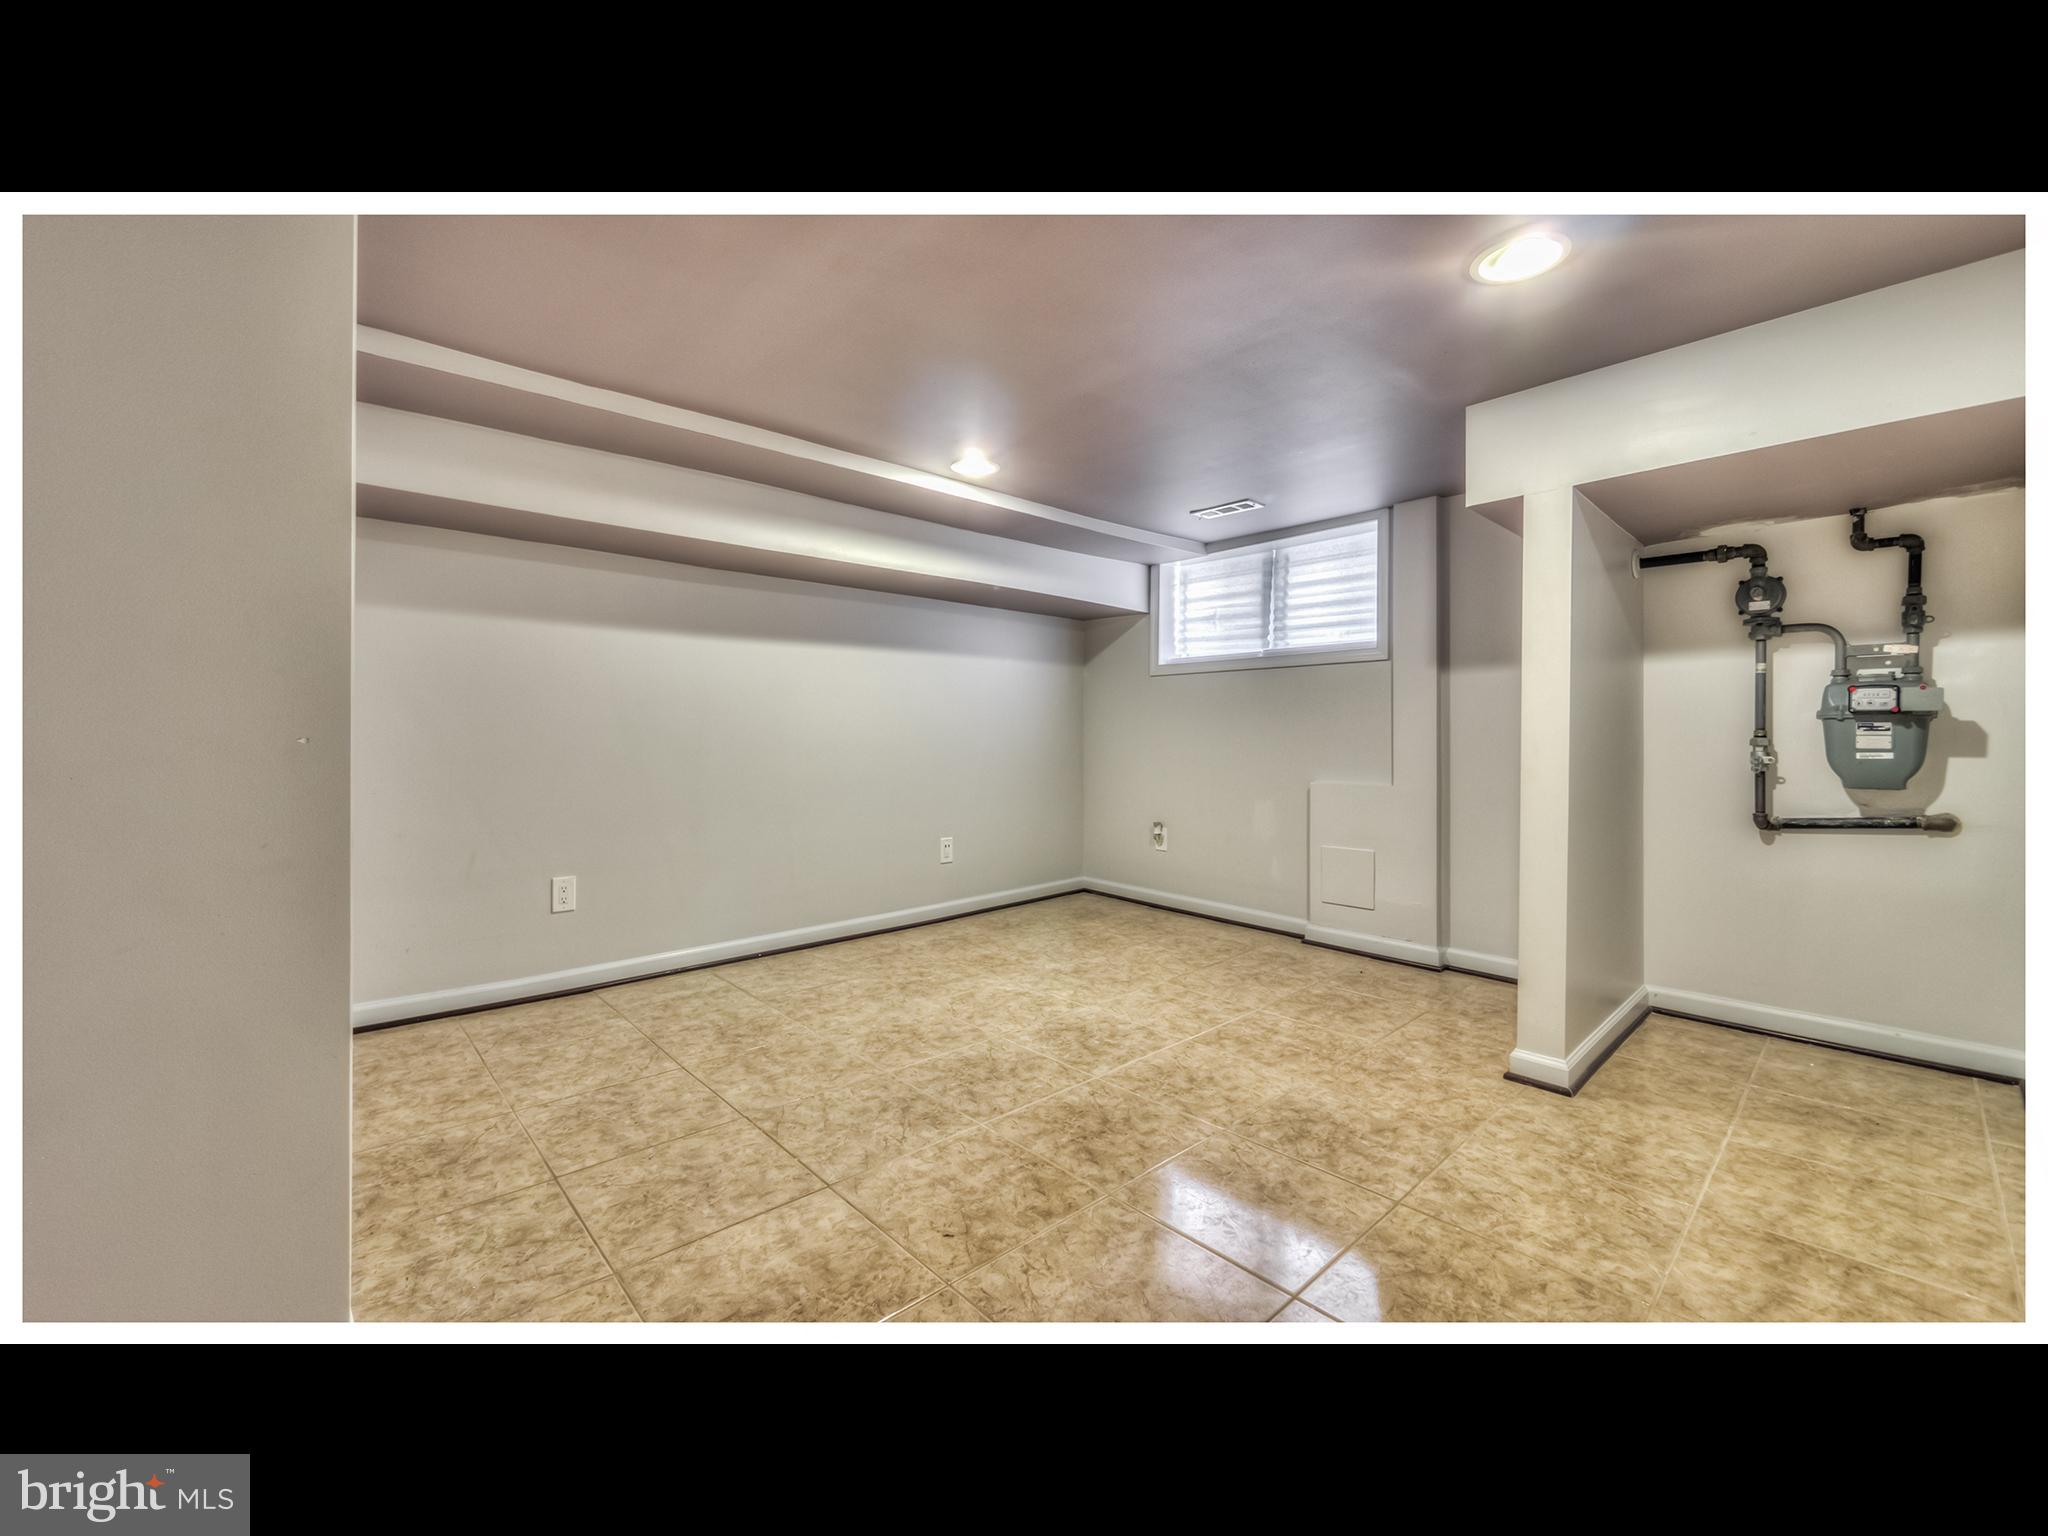 2933 MCELDERRY ST, Baltimore, MD 21205 $139,850 www